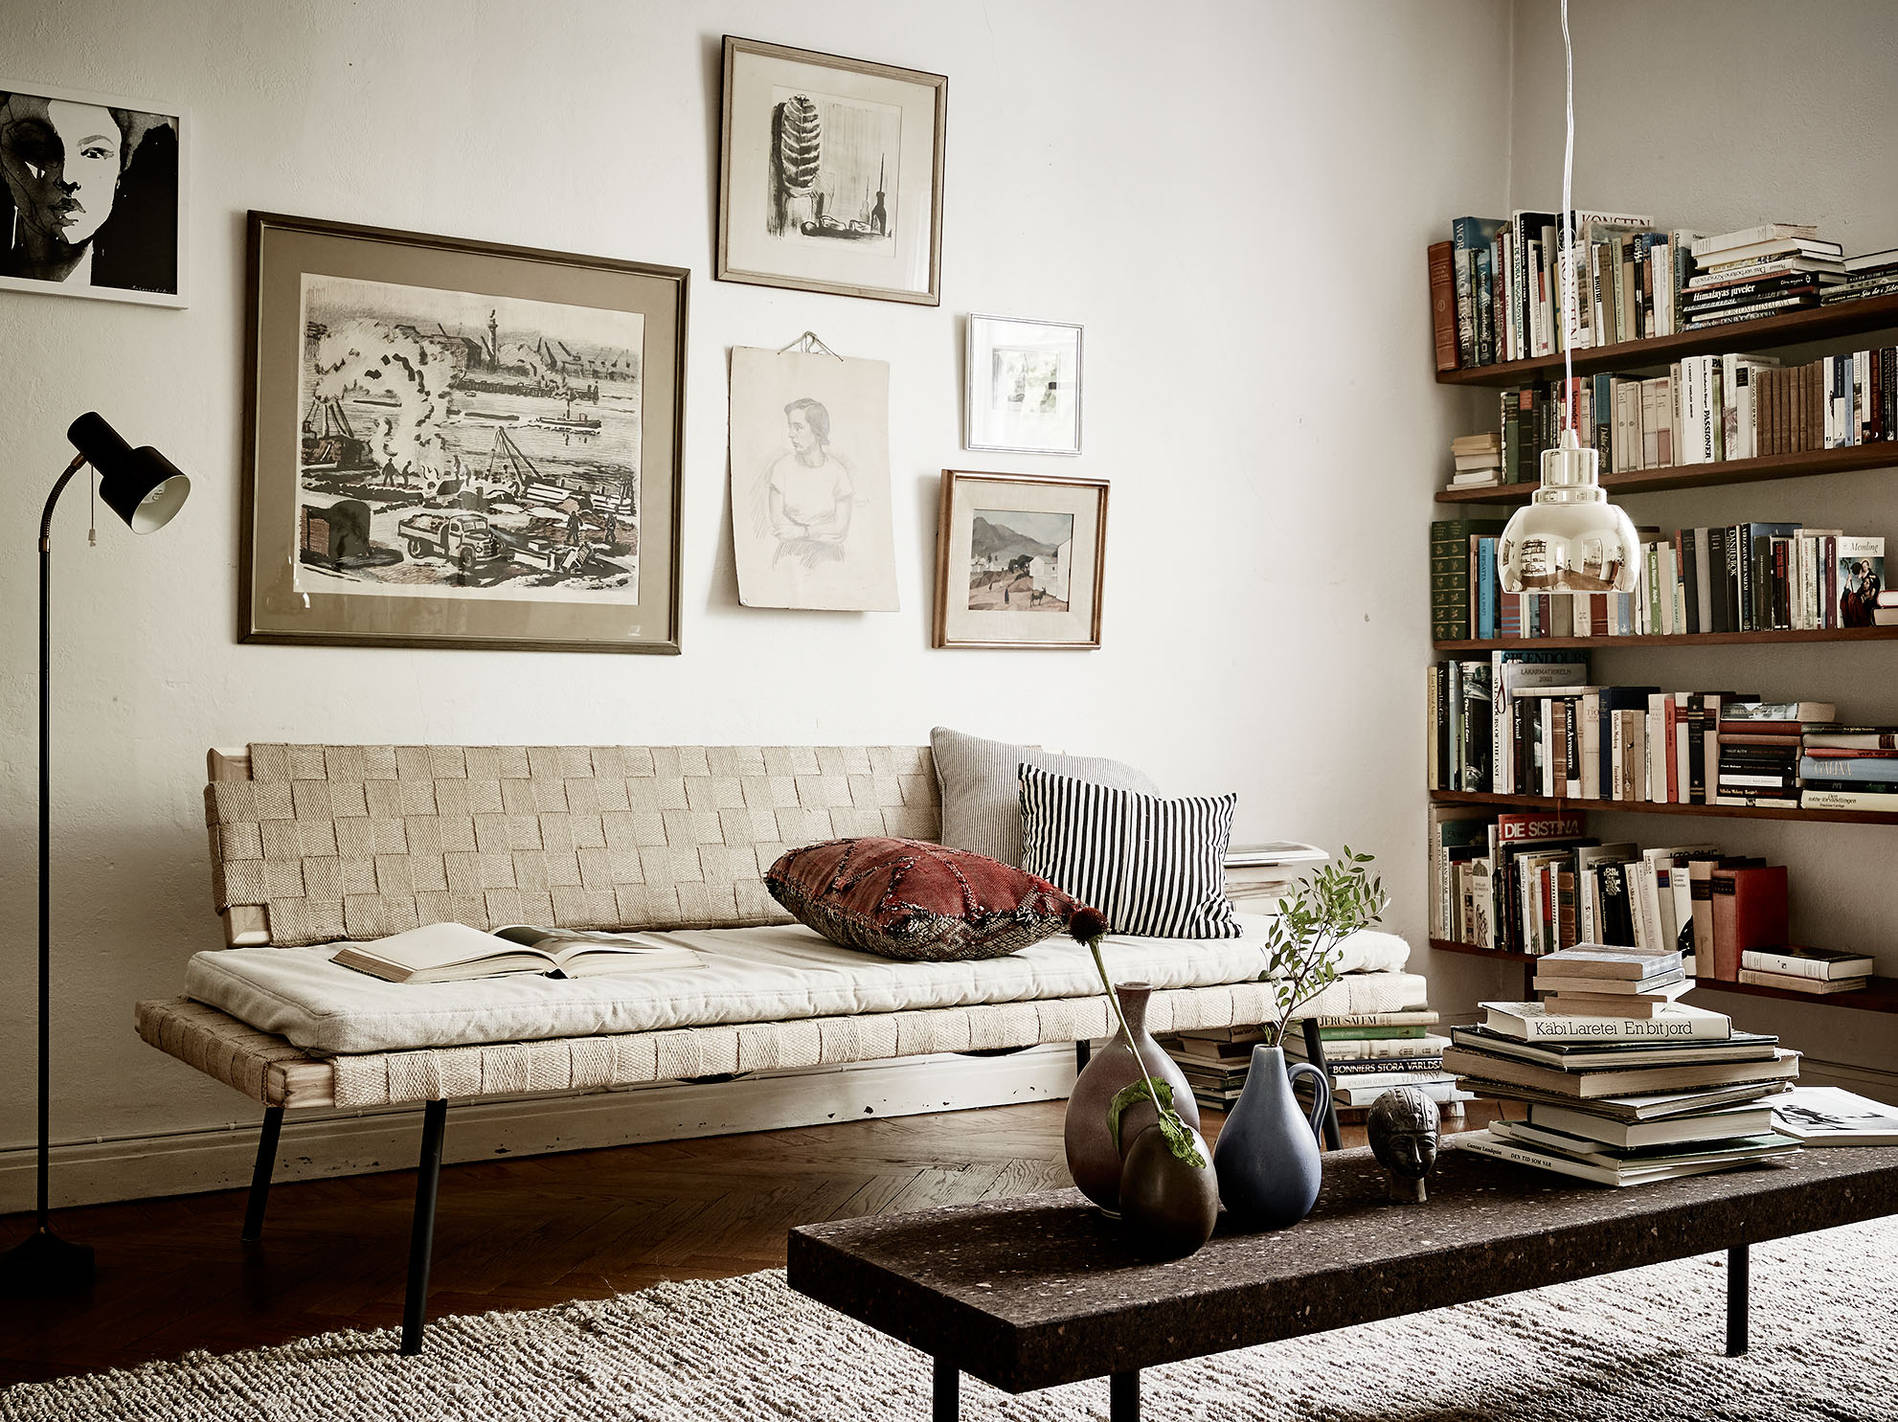 Ikea Sinnerlig Couchtisch Bois Brut Et Sinnerlig Planete Deco A Homes World